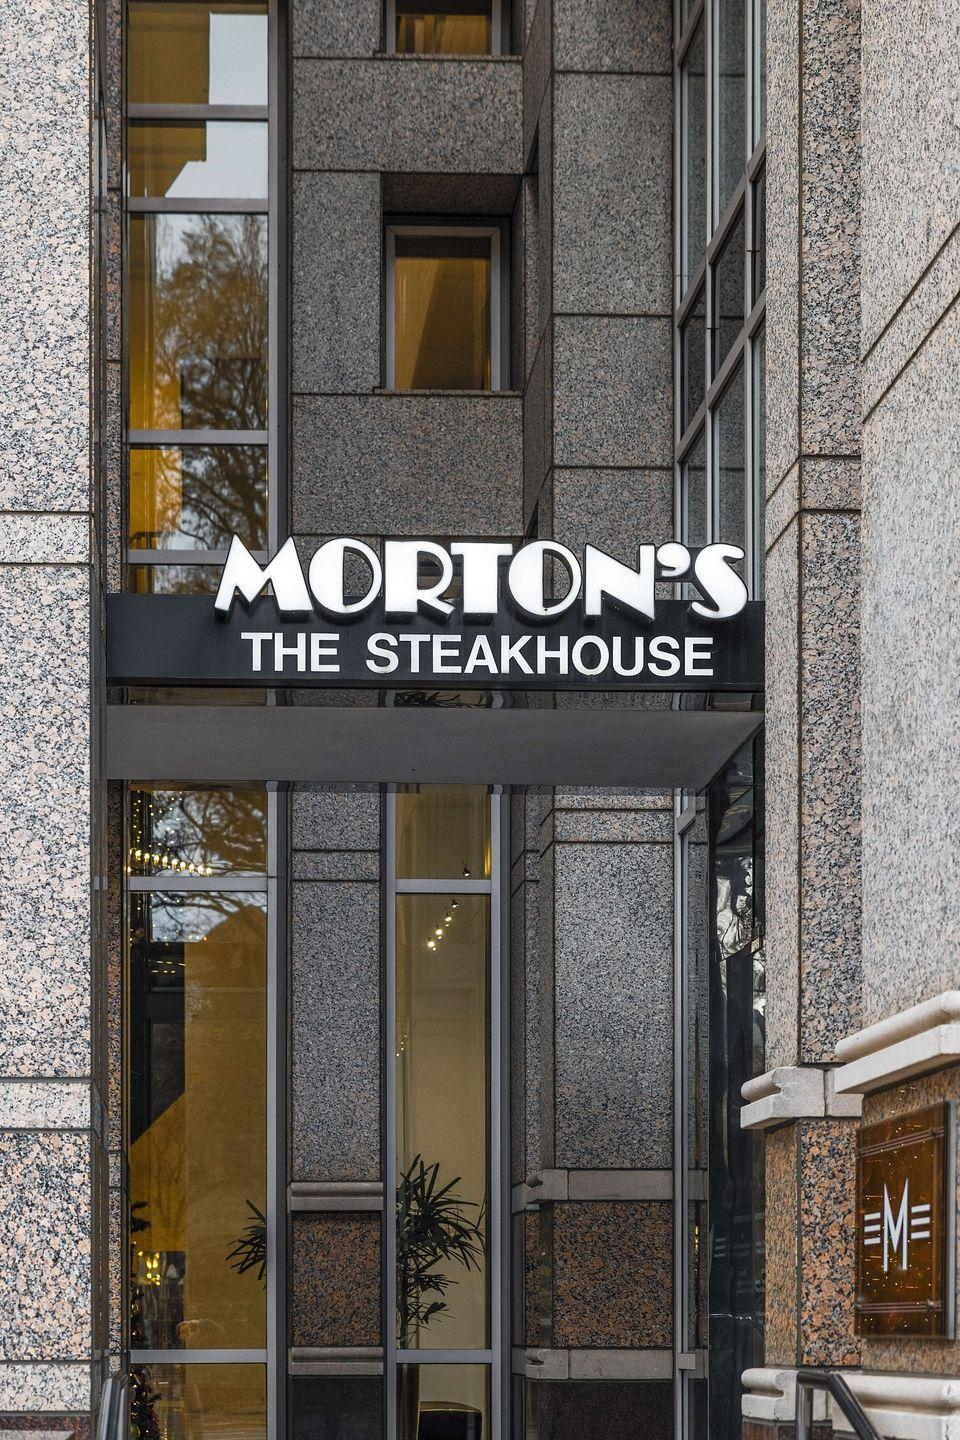 "<p>Not only is Morton's Steakhouse <a href=""http://www.mortons.com/holiday/"" rel=""nofollow noopener"" target=""_blank"" data-ylk=""slk:open"" class=""link rapid-noclick-resp"">open</a> on Christmas Day, but the restaurant encourages families to make a holiday tradition of celebrating at one of their locations — just make sure you have reservations, since seating will be limited due to limited capacity from COVID-19 restriction. And, if you want to stay in this holiday season, you can even order to-go ahead of time so you can have a delicious Christmas meal without spending the entire day slaving away in the kitchen.</p>"